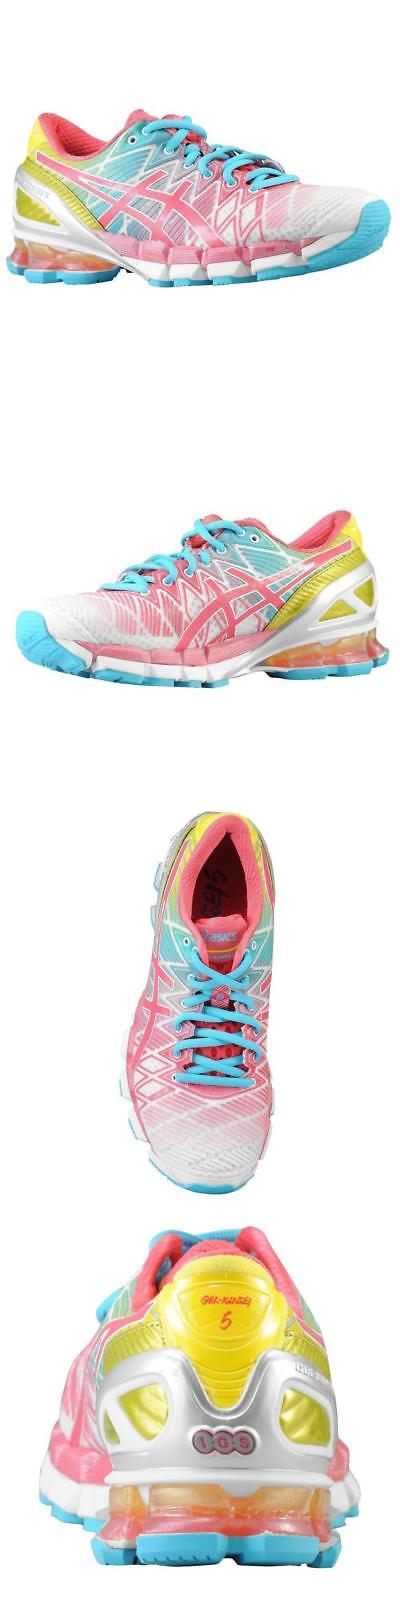 Mixed Items 17724 and Lots 63889: Chaussures de course femme Asics de Gel Kinsei 5 pour femme 89be9d8 - igoumenitsa.info